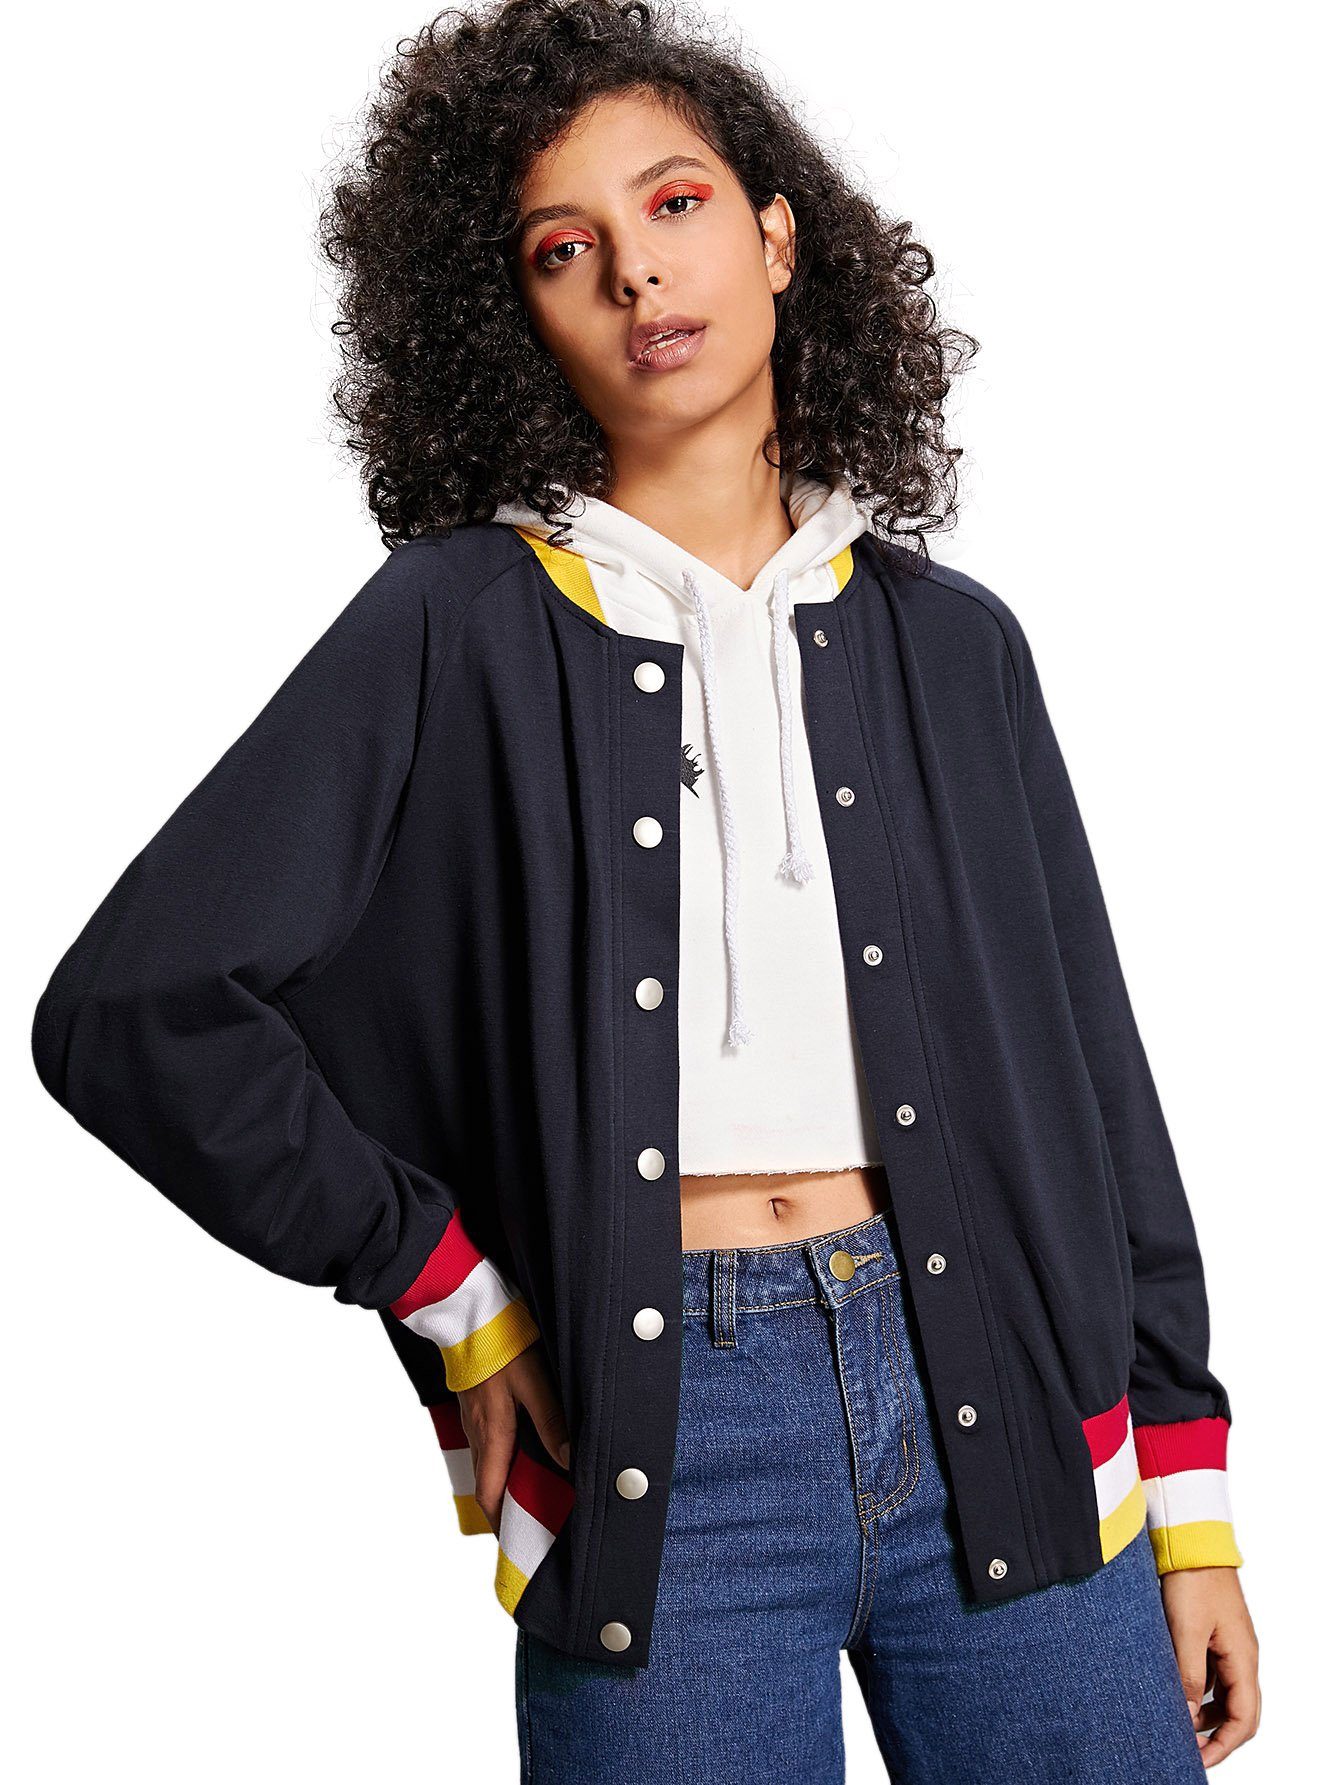 Romwe Women's Long Sleeve Colorblock Striped Print Button Up Baseball Jersey Jacket Top Navy L